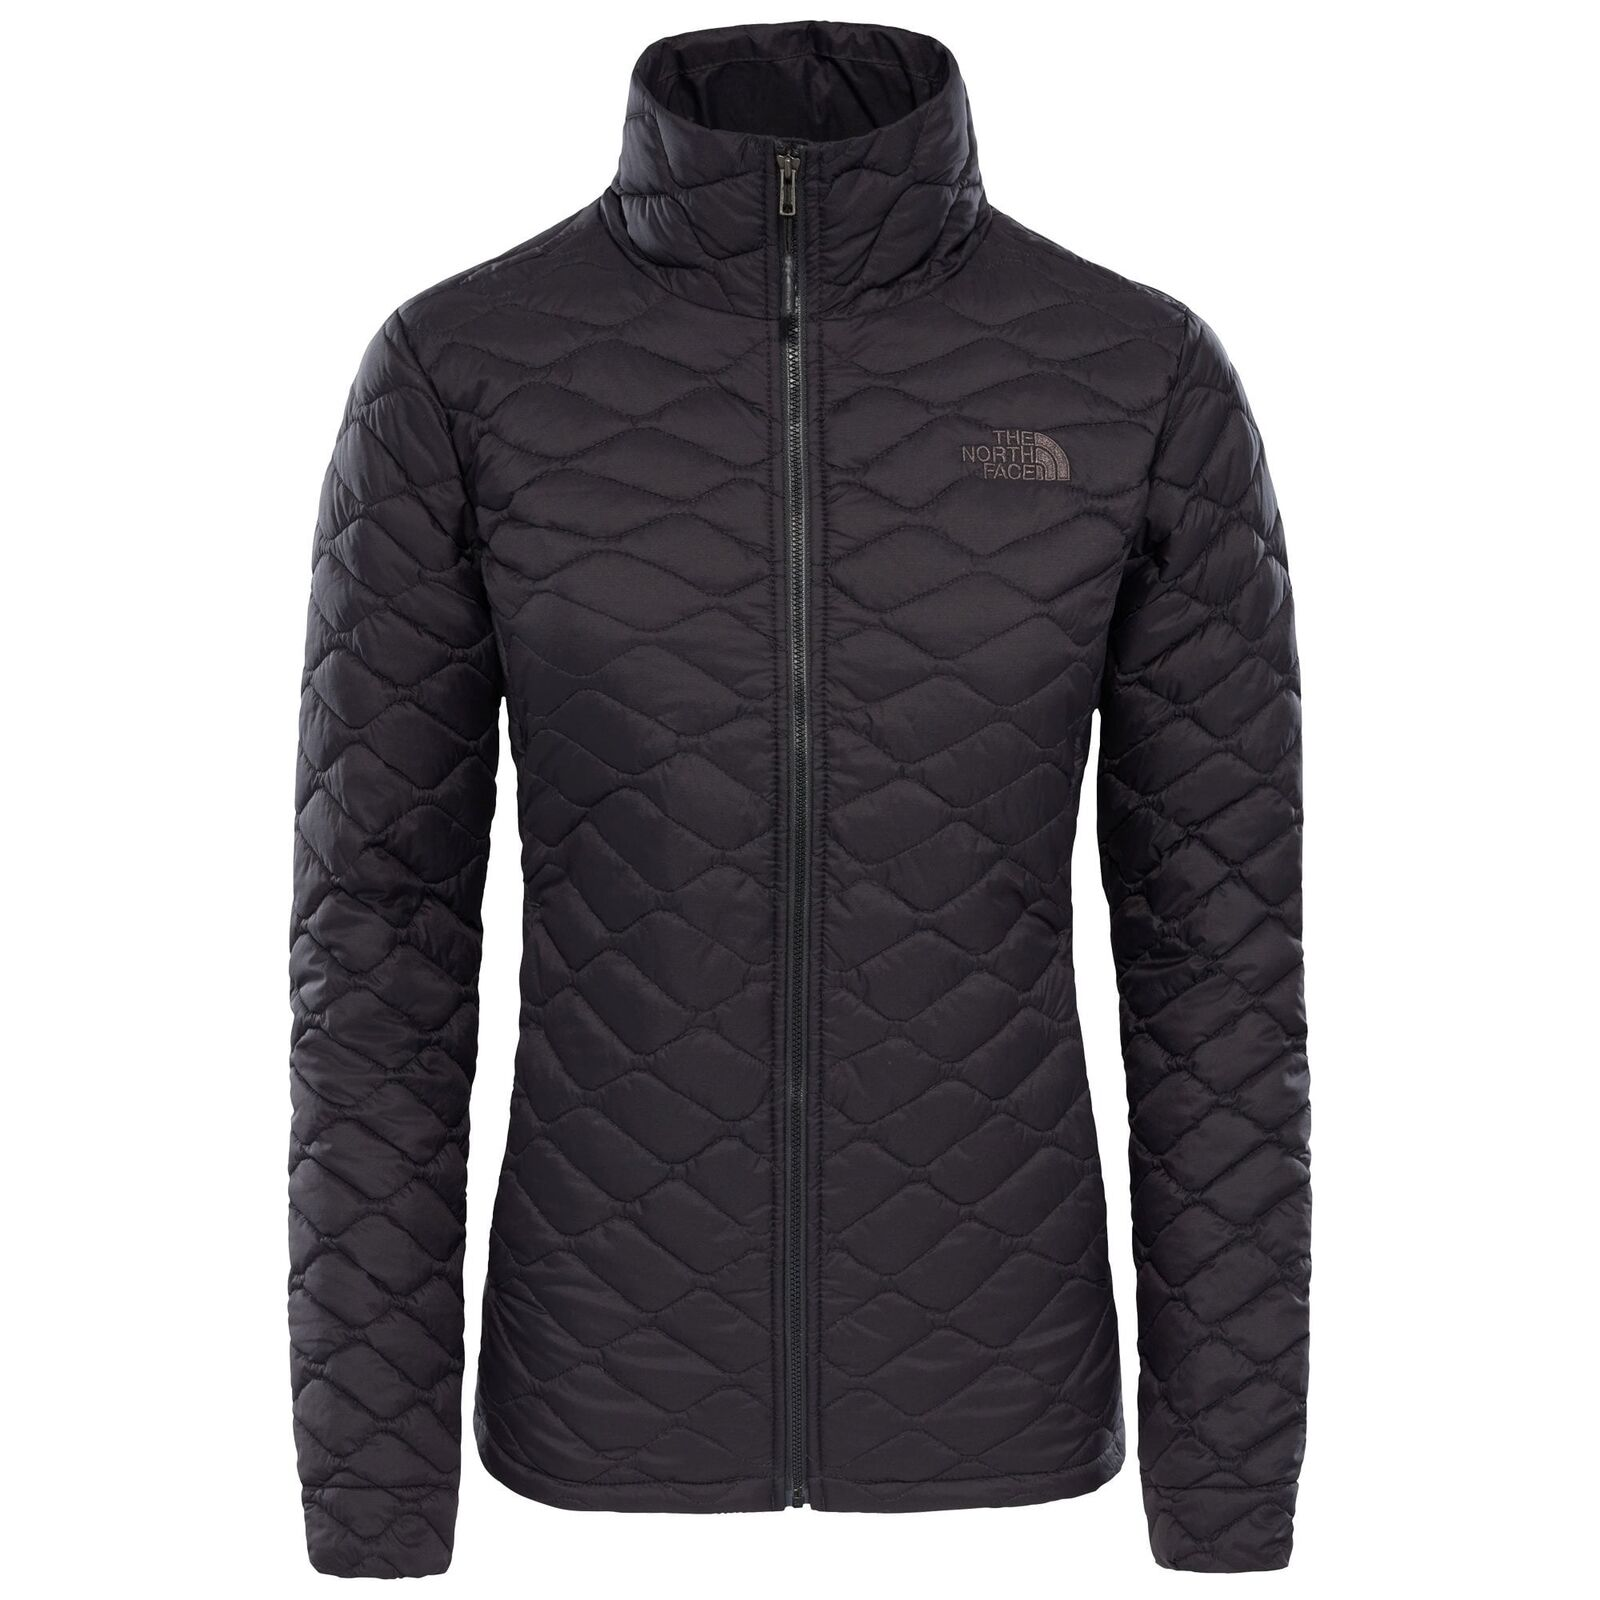 THE North Face Thermoball giacca da donna